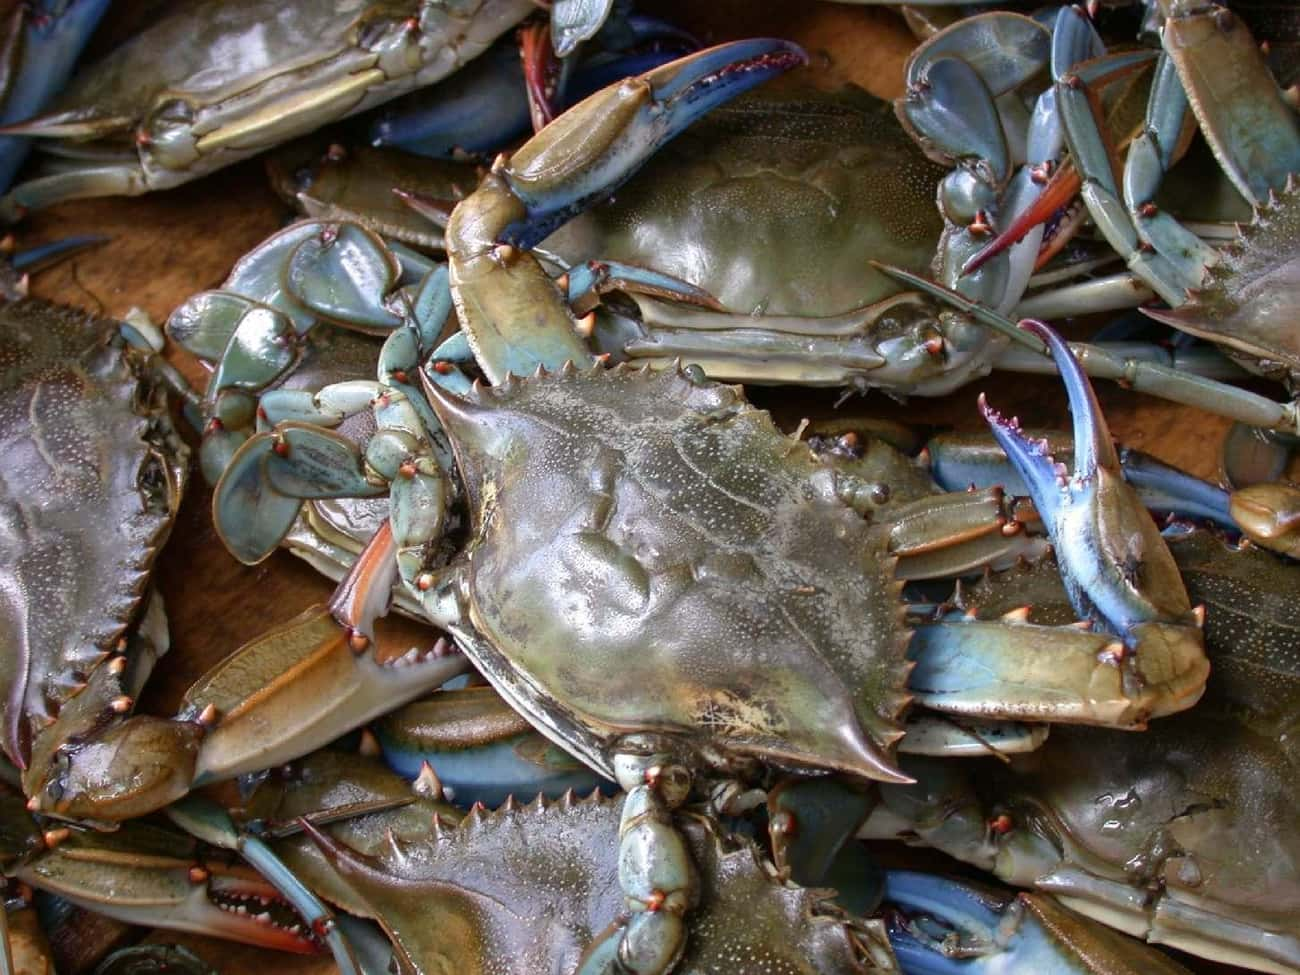 Best Kinds Of Crab To Eat Different Types Of Crab Meat,How To Make Candles